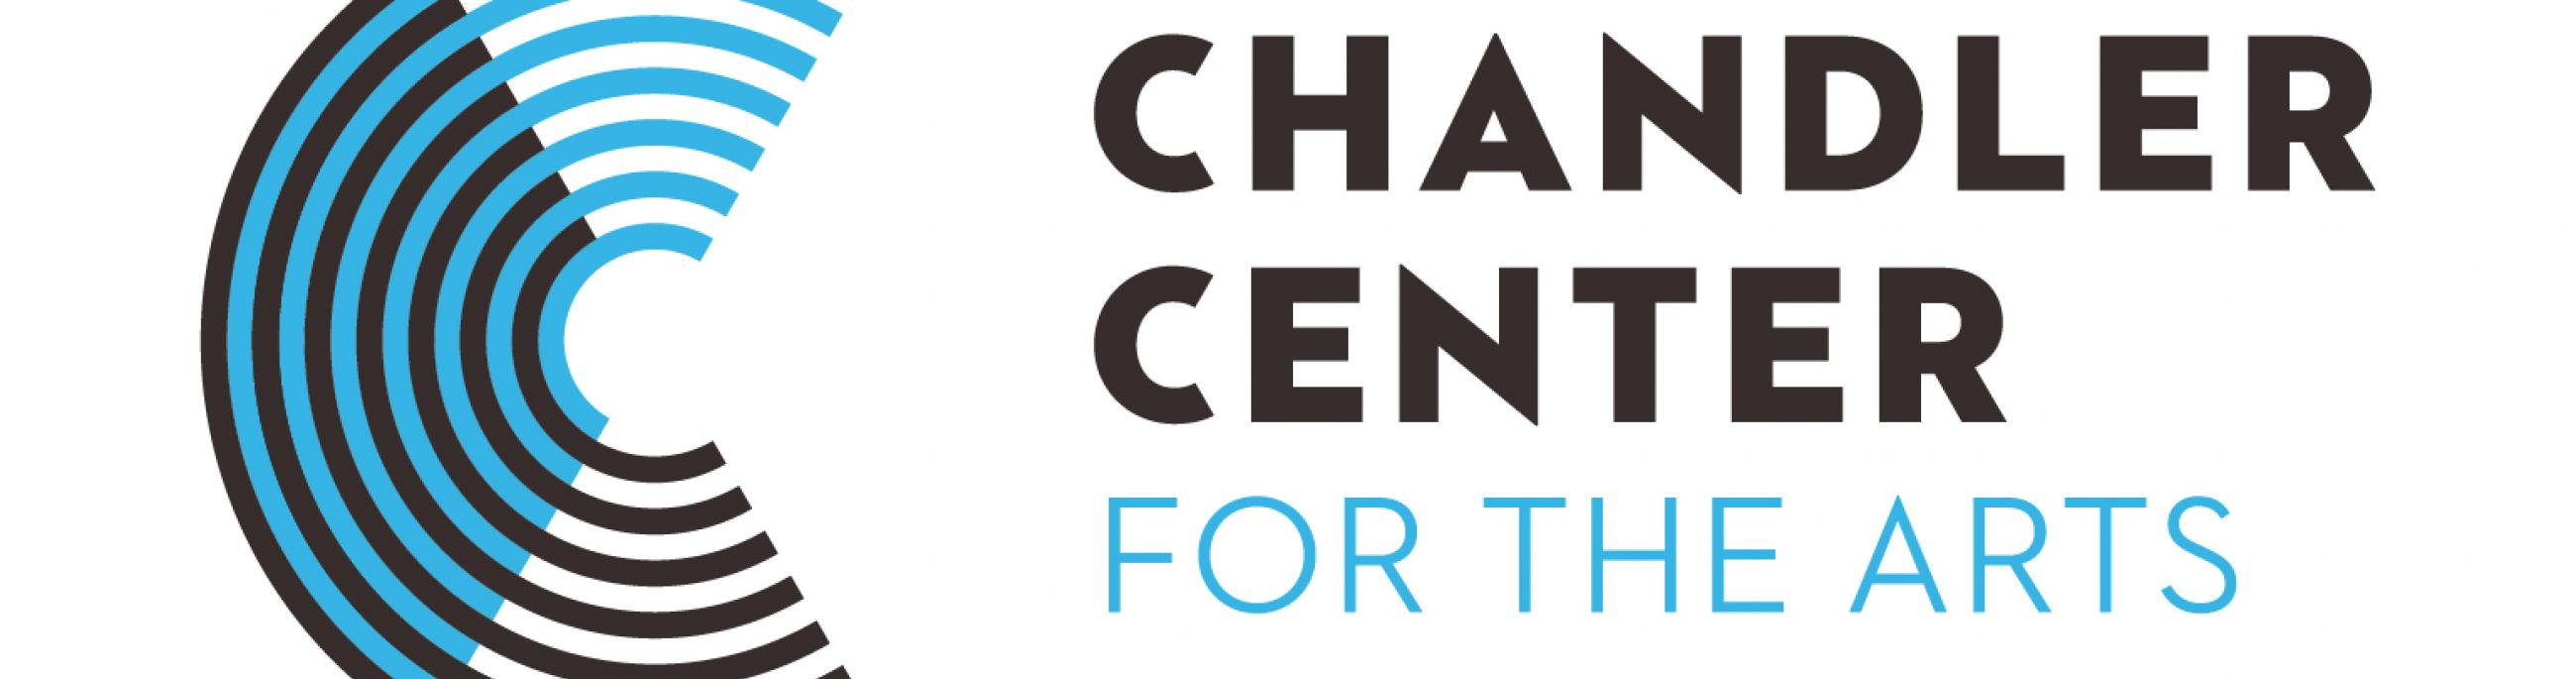 Chandler Center for the Arts brand created in the spring of 2019